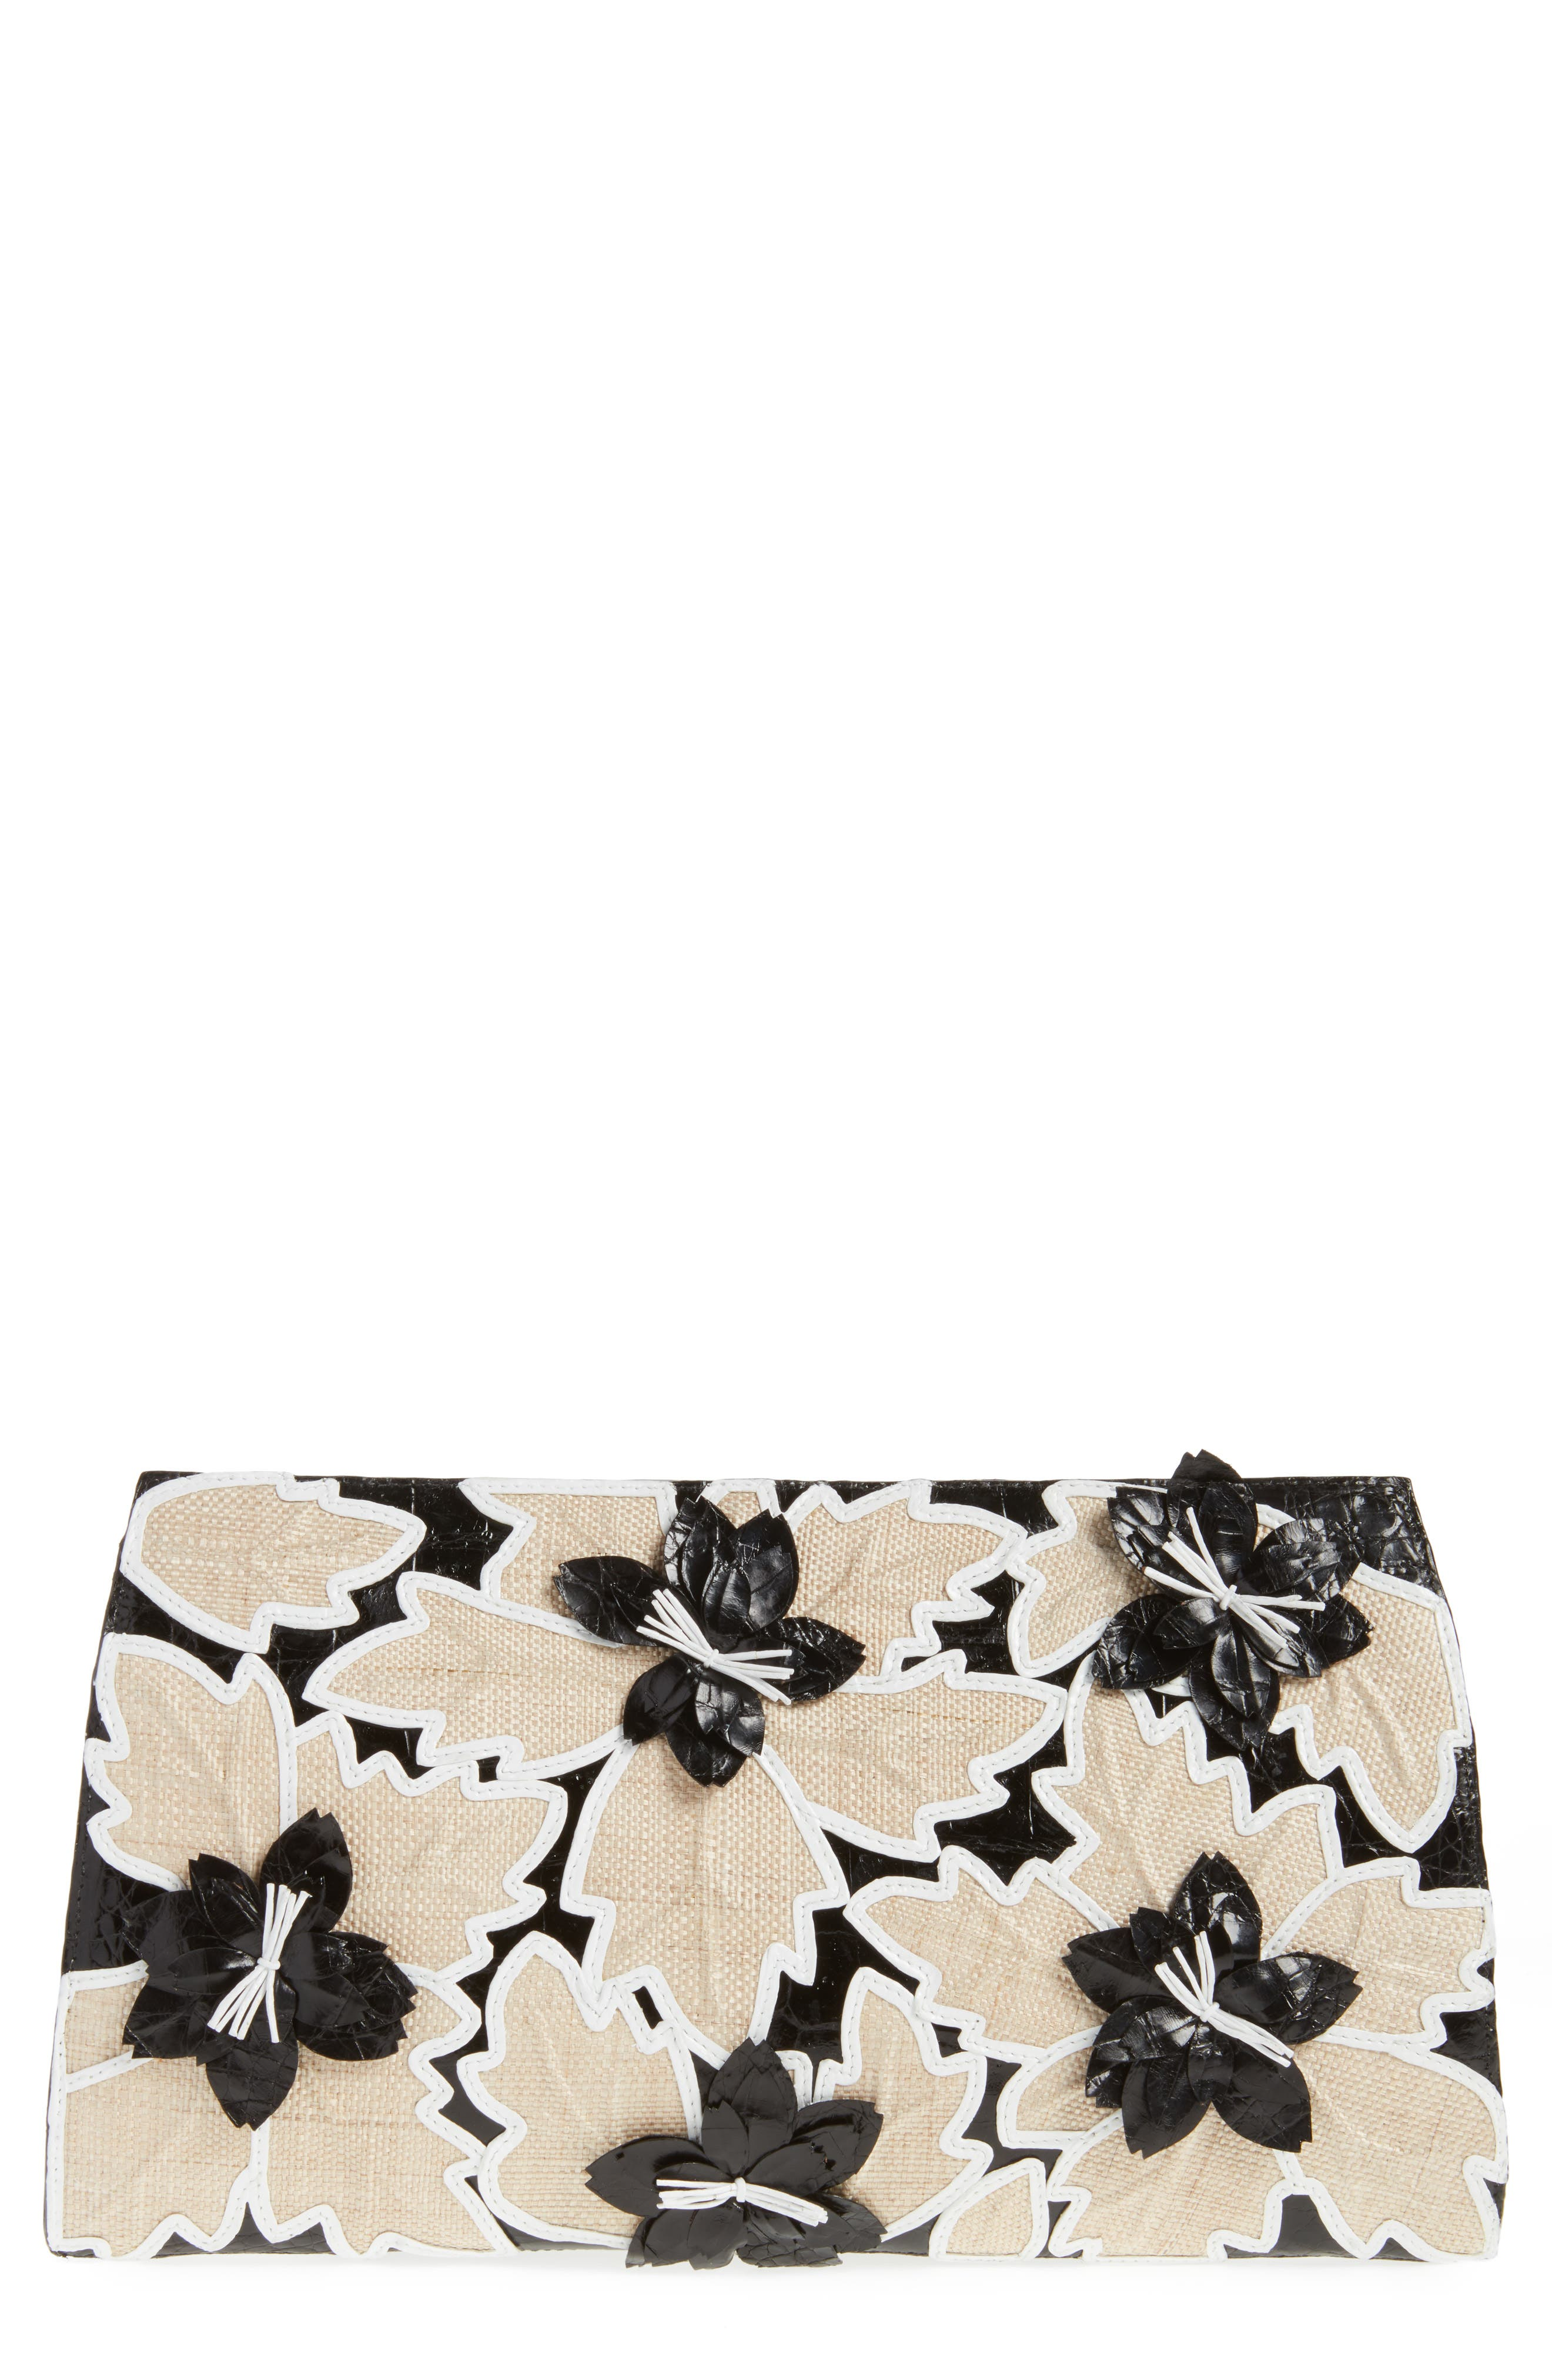 Nancy Gonzalez Floral Embellished Genuine Crocodile Clutch